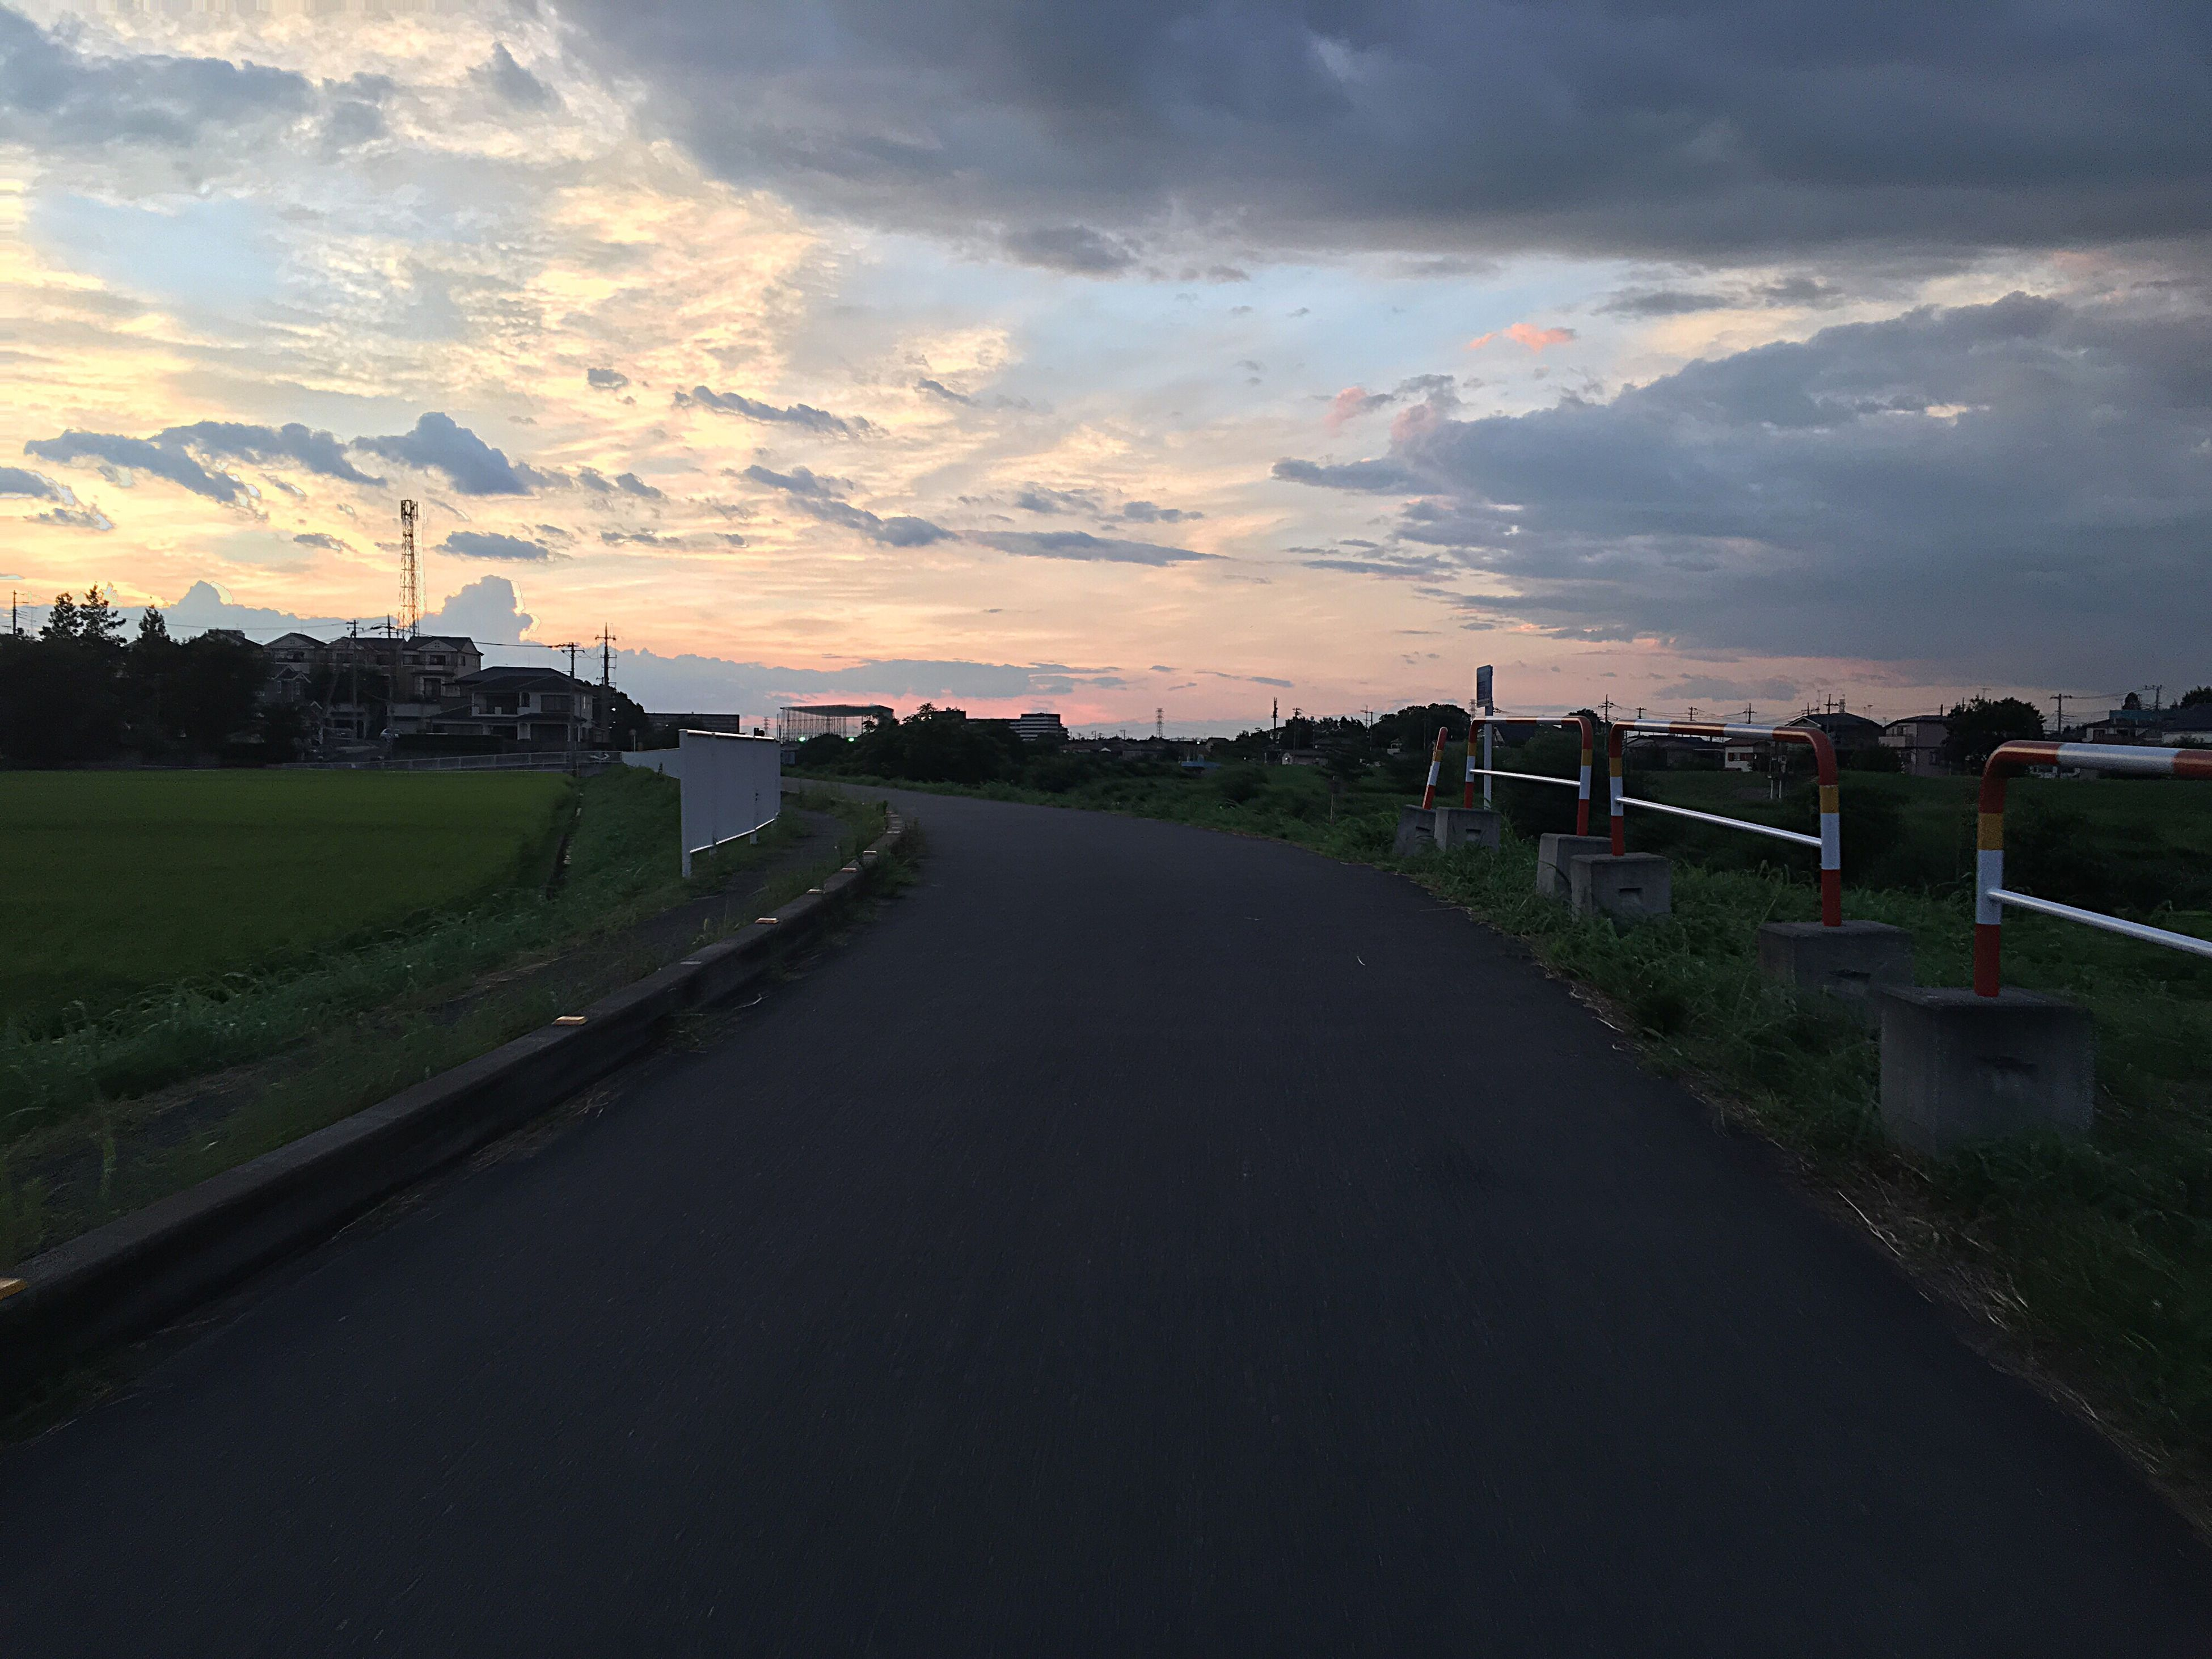 the way forward, sunset, road, empty, sky, cloud - sky, landscape, transportation, long, tranquil scene, cloud, scenics, diminishing perspective, tranquility, empty road, field, orange color, beauty in nature, outdoors, narrow, cloudy, solitude, dark, vanishing point, nature, countryside, remote, non-urban scene, no people, country road, rural scene